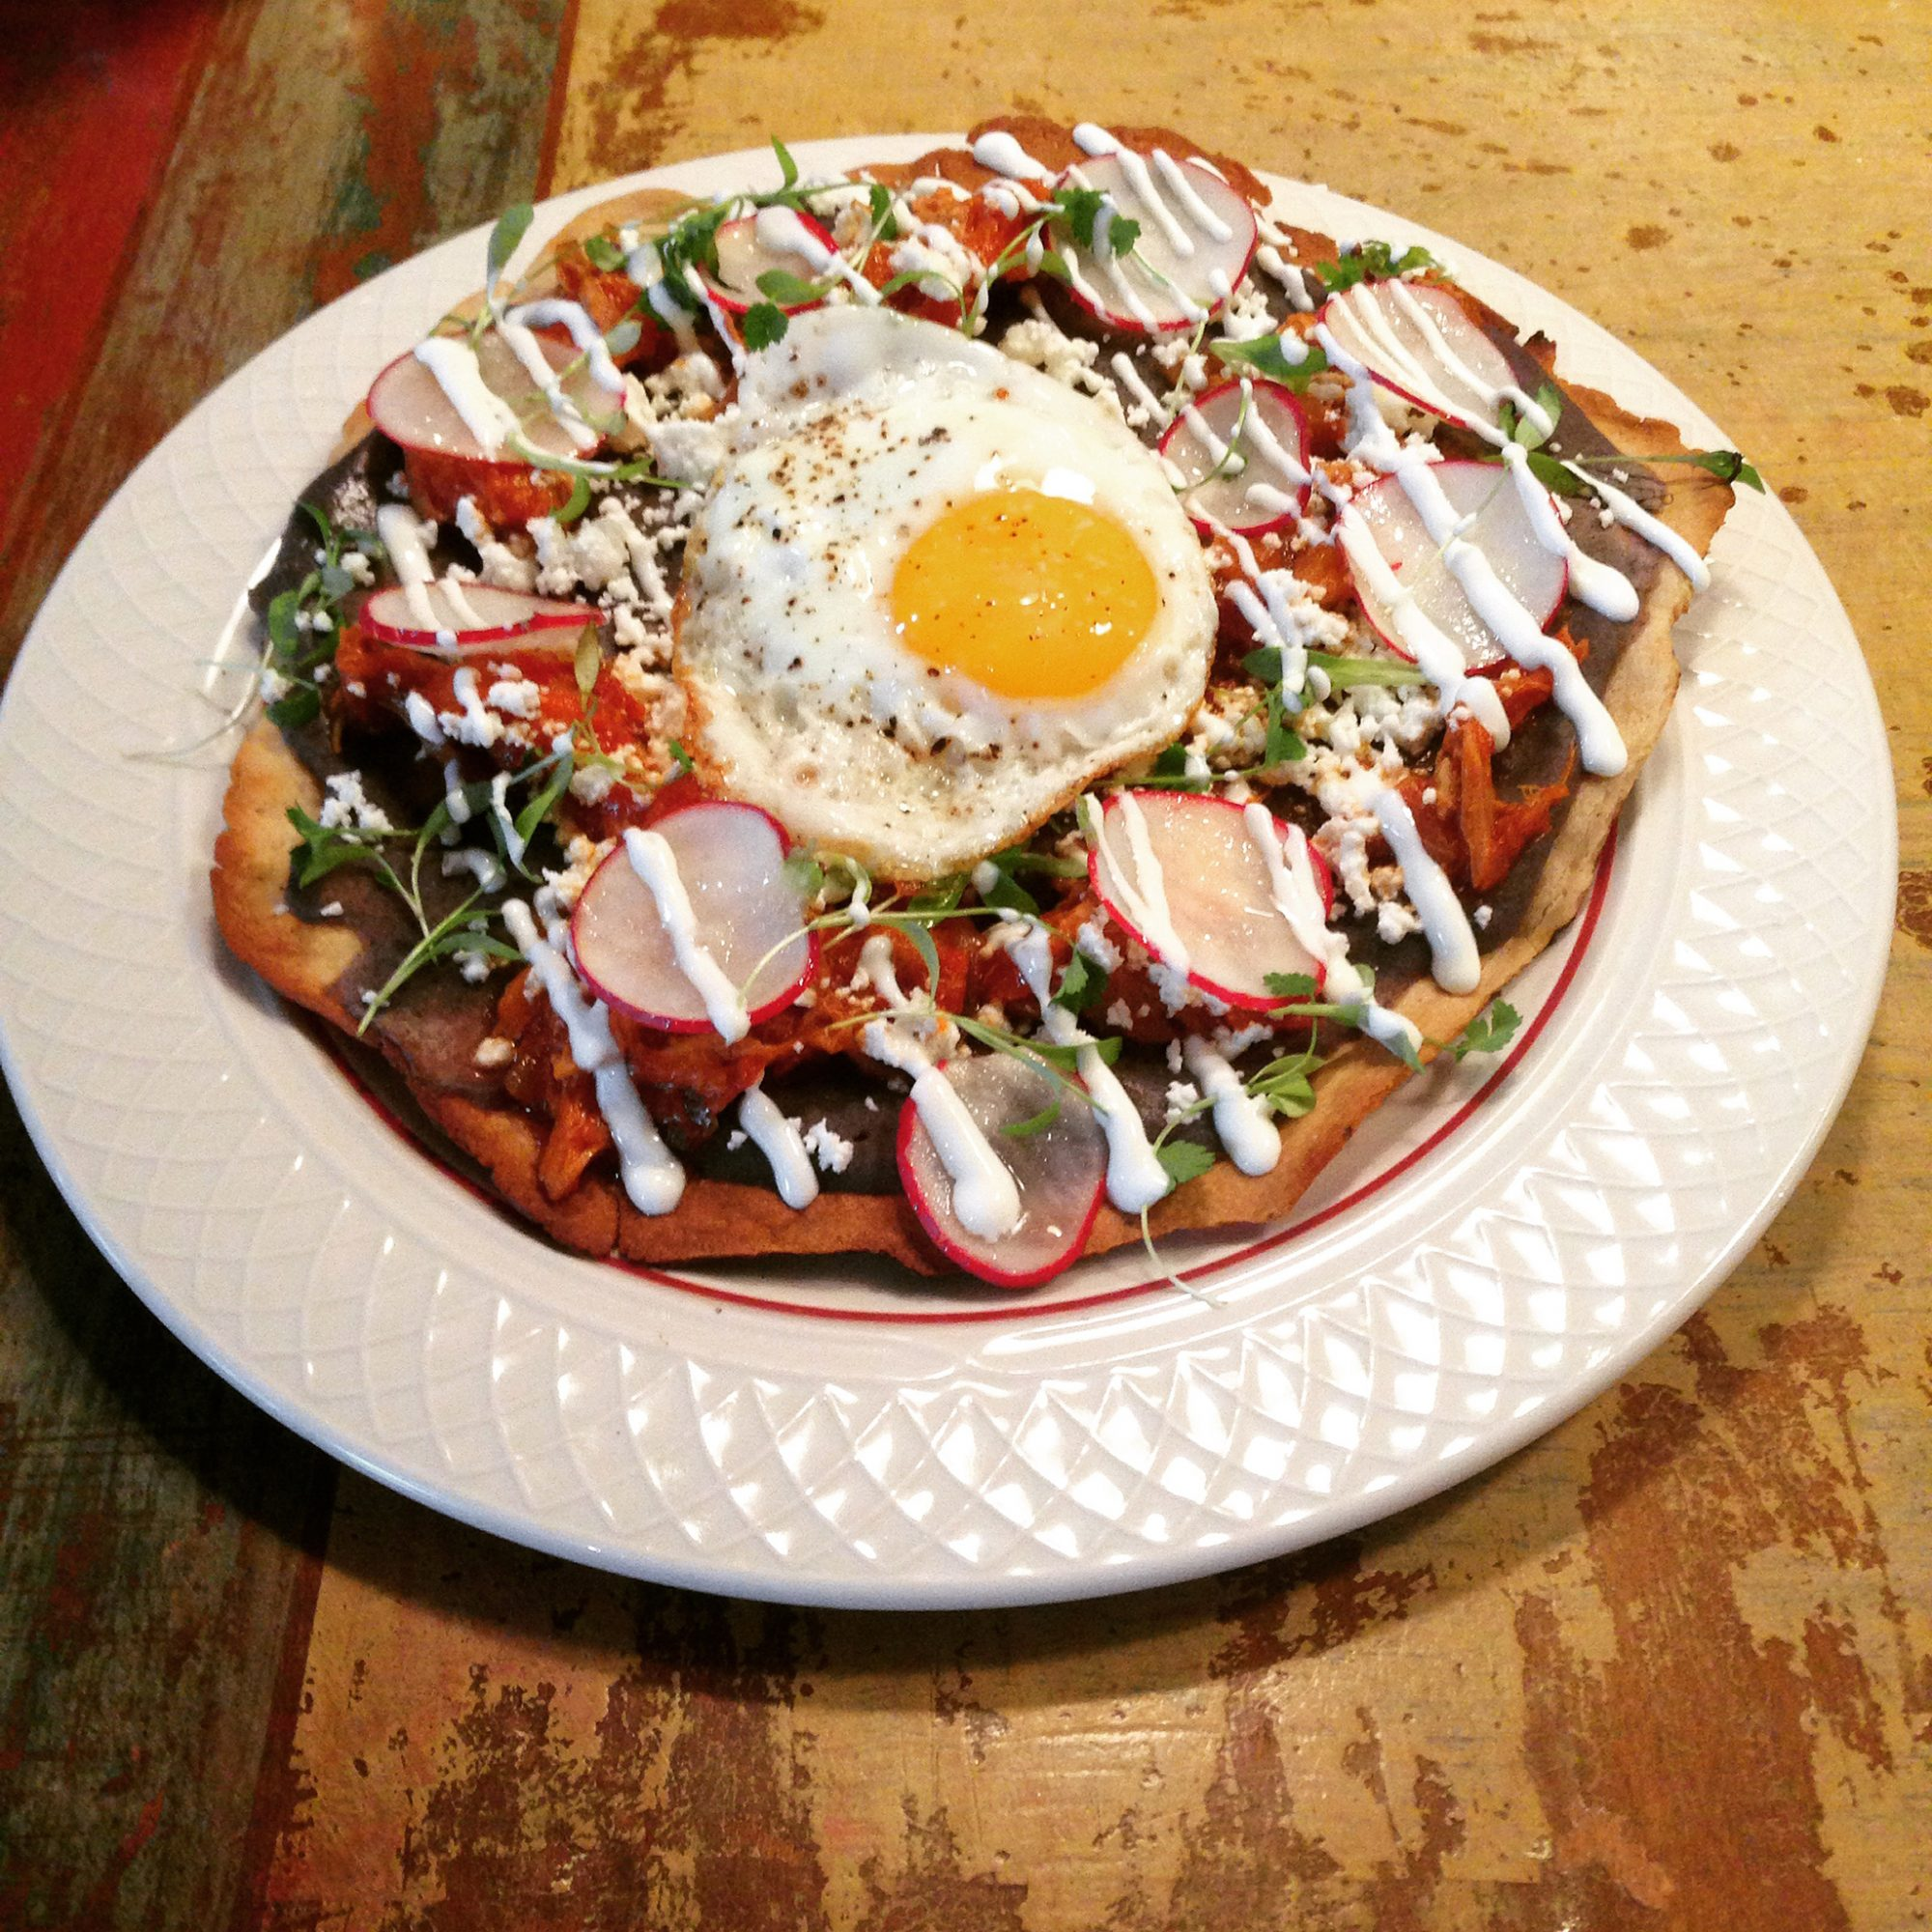 The Tlayuda (Tortilla with Fried Eggs, Queso and Chorizo)